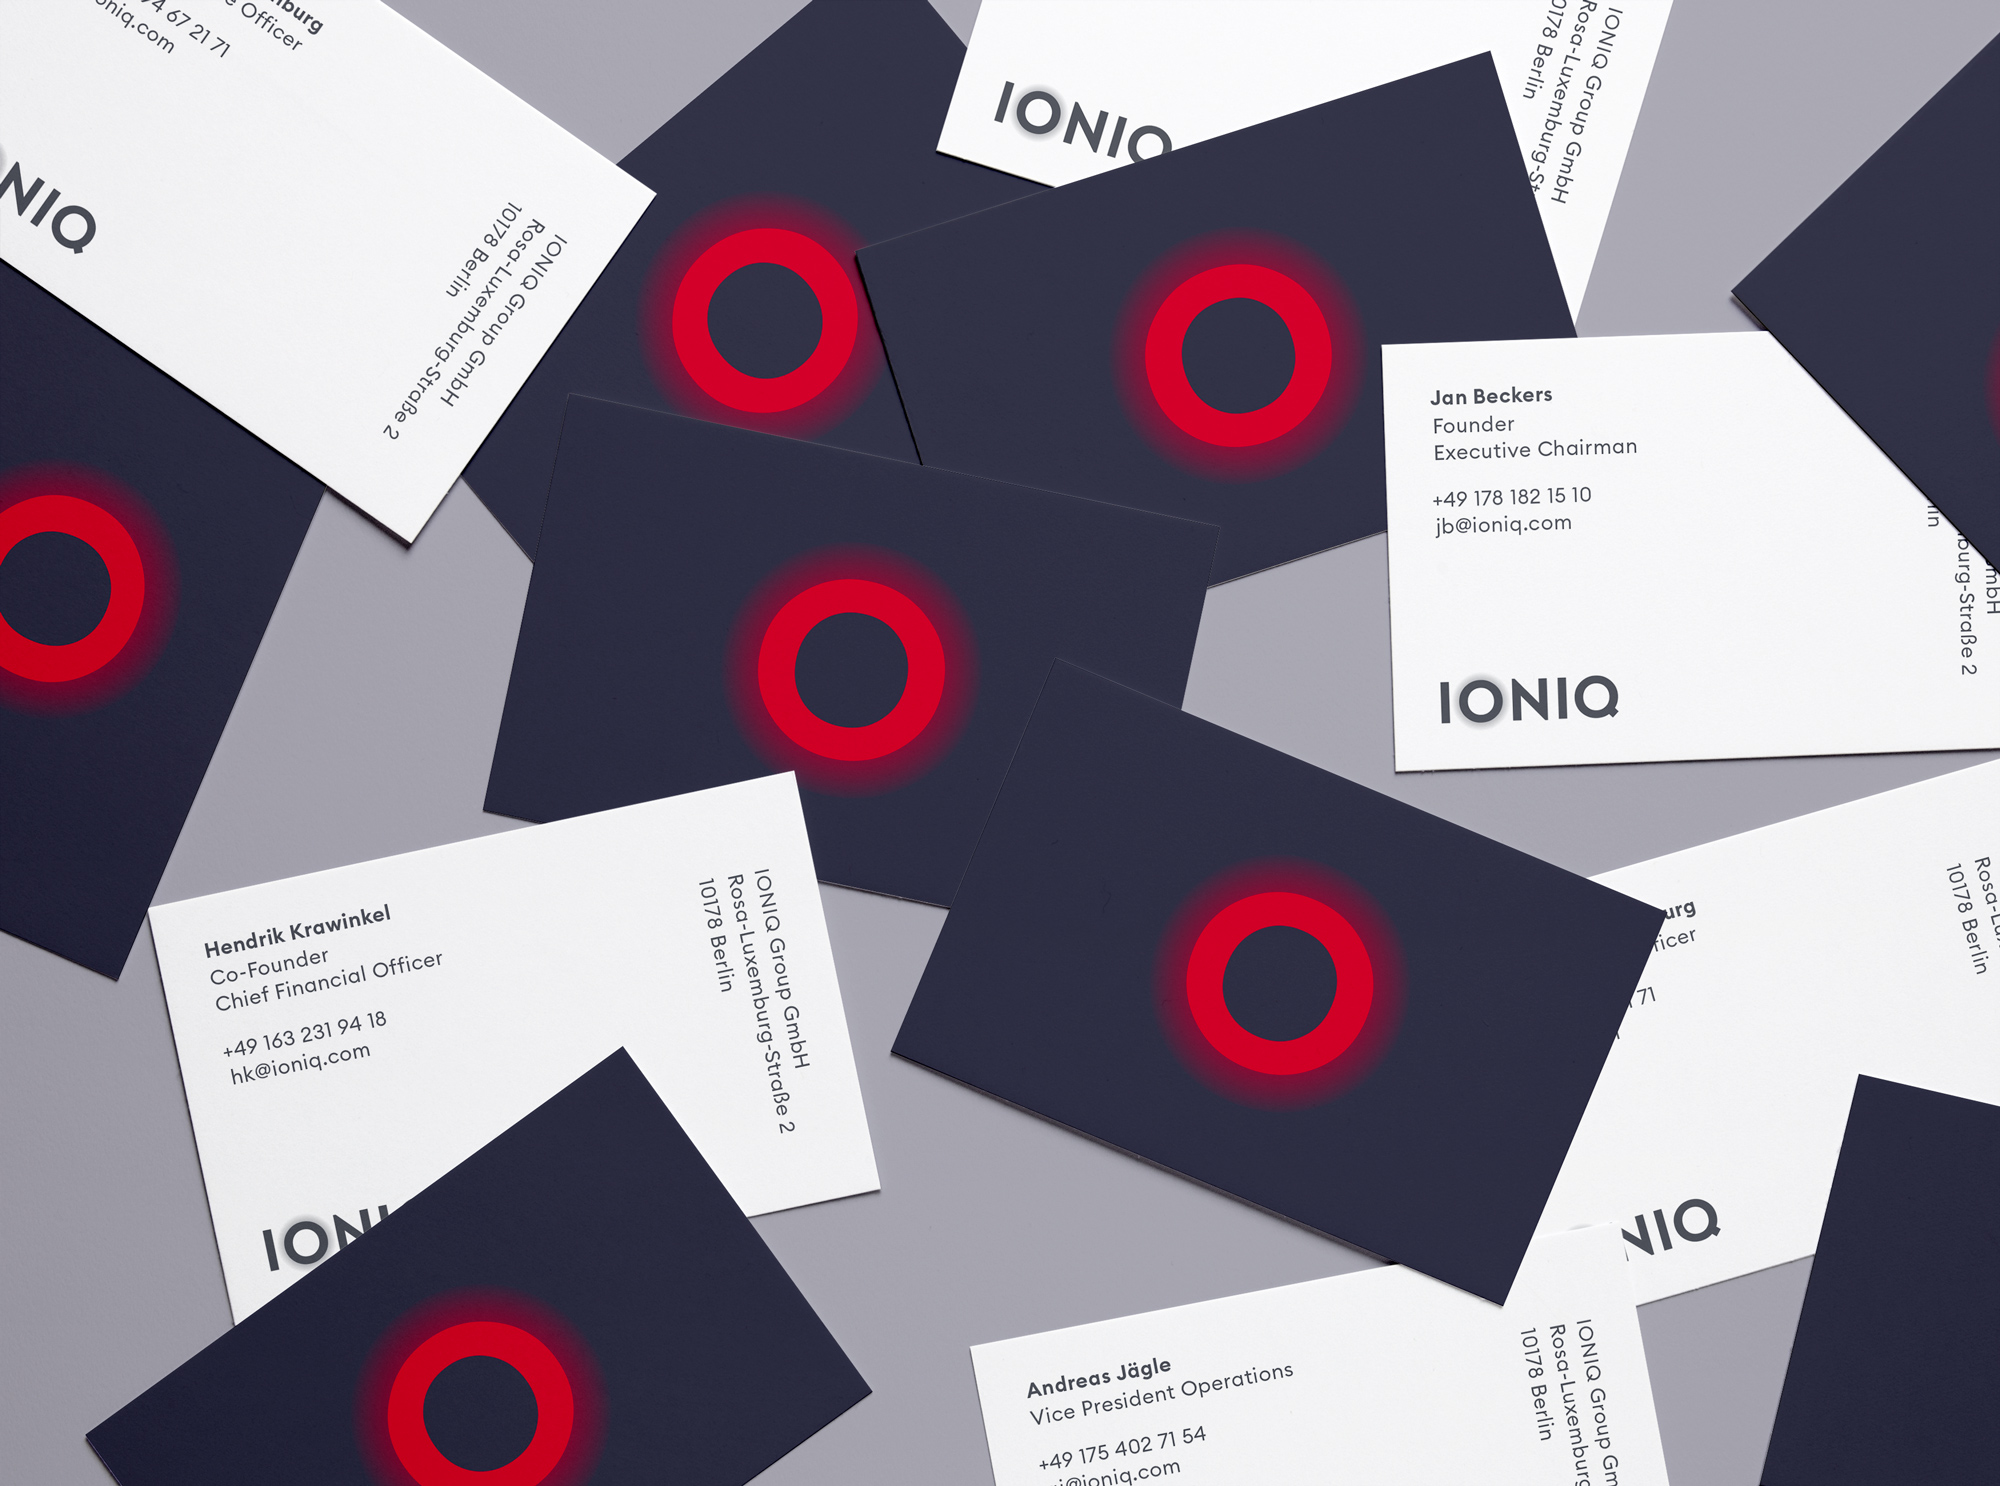 190515_ioniq_BusinessCards_mockup_2